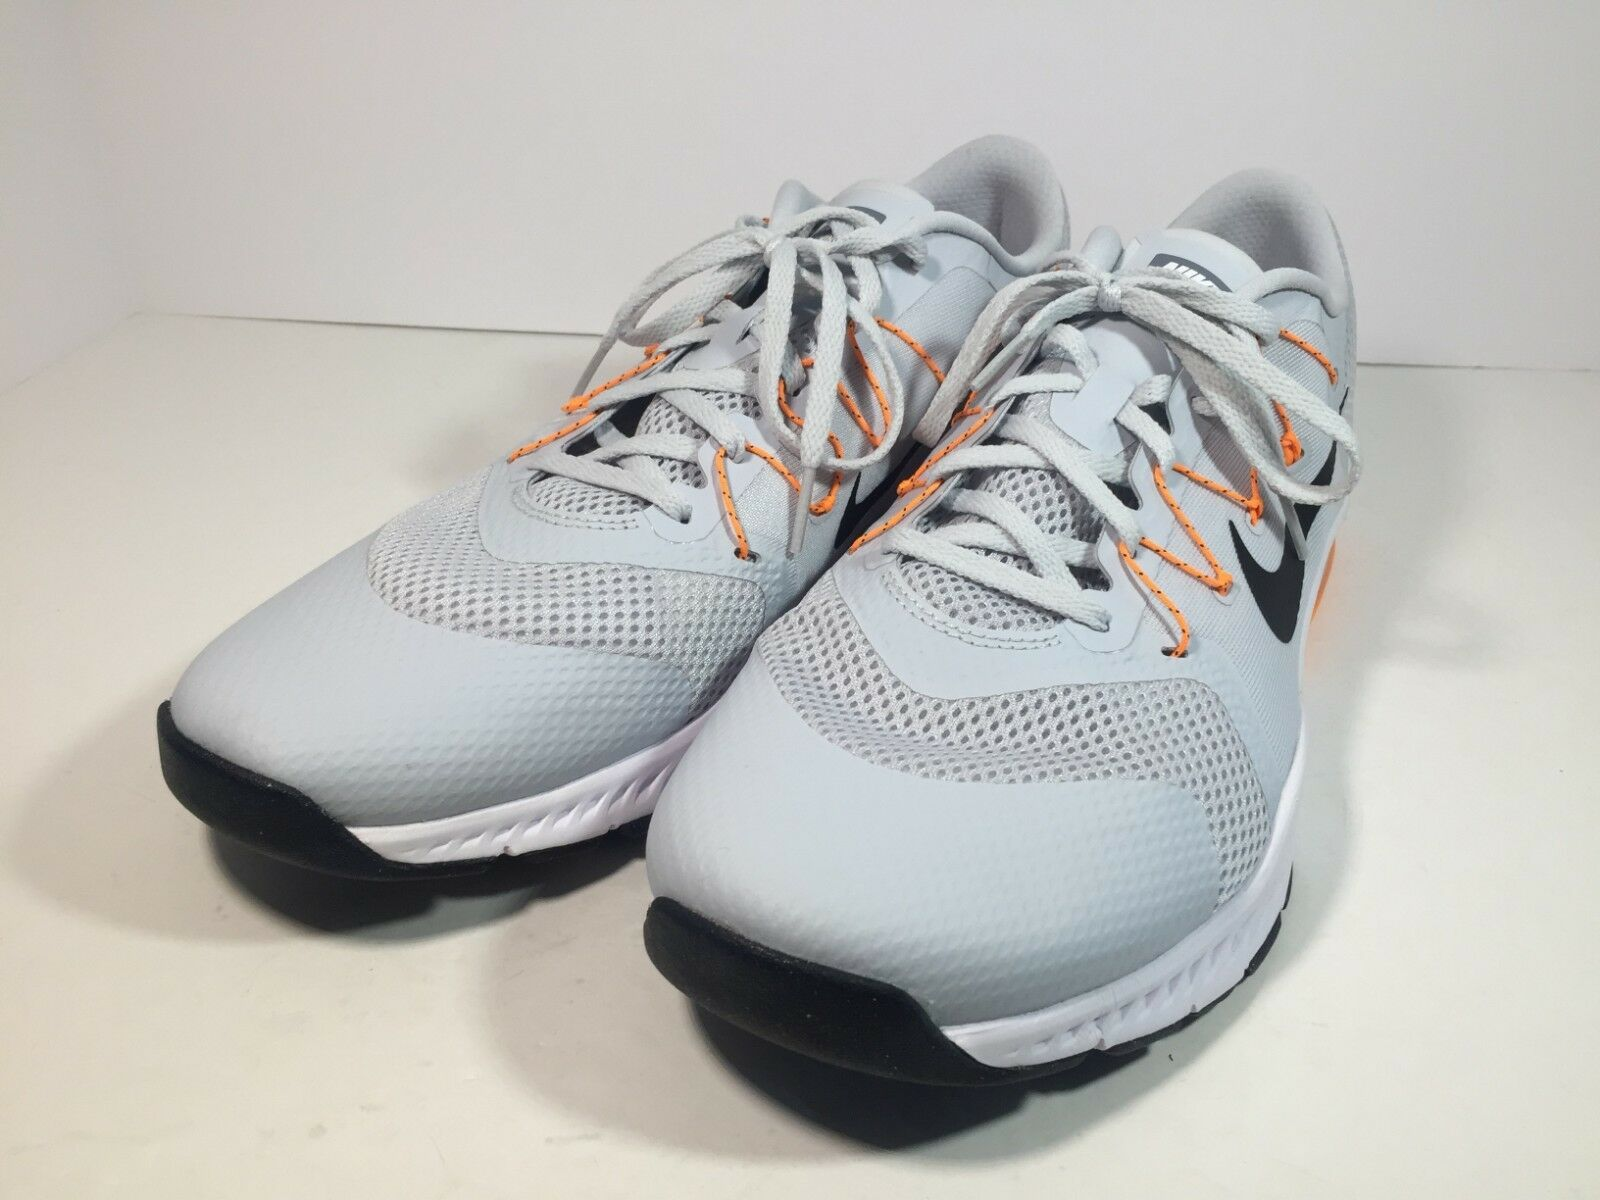 outlet store 88118 19b73 nike nike nike zoom train complete pure platinum black bright citrus cool  grey